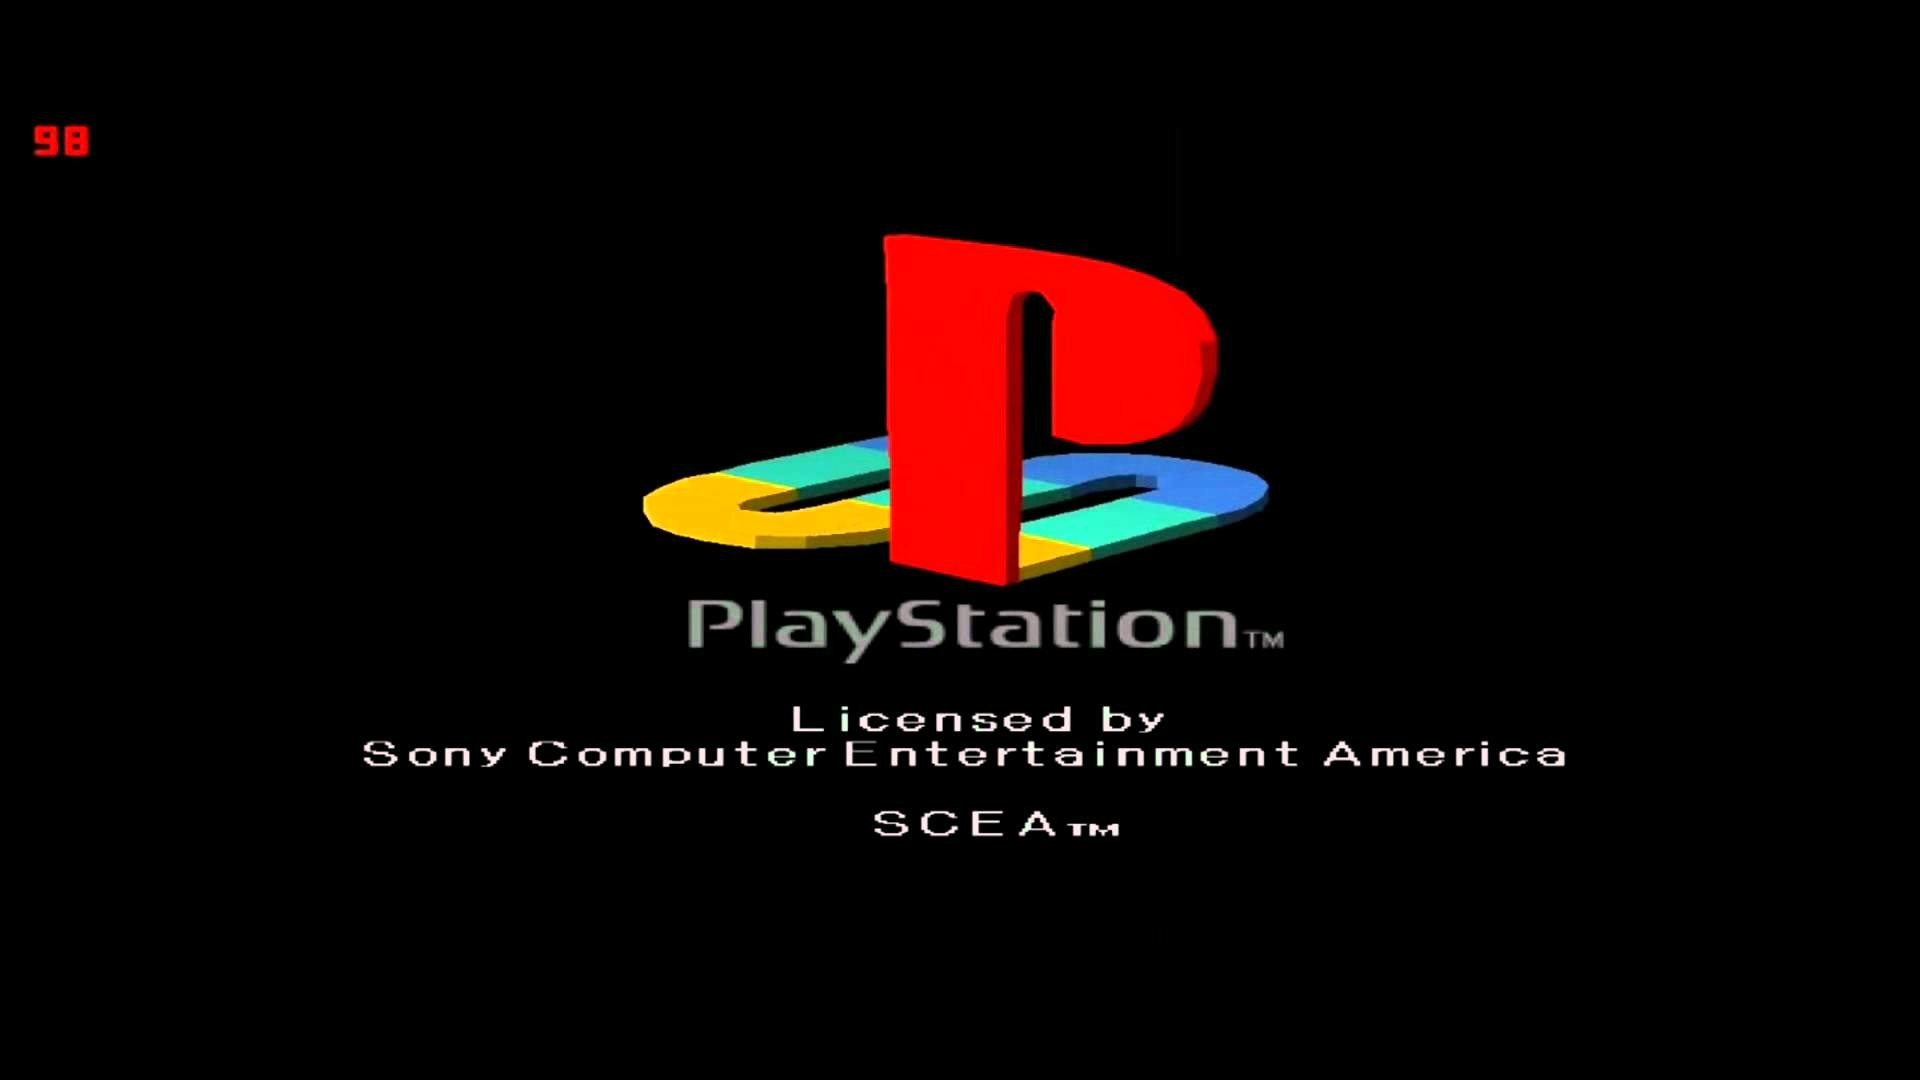 1920x1080 The Most Eargasmic Sound Ever Created (Playstation 1 Startup) - YouTube